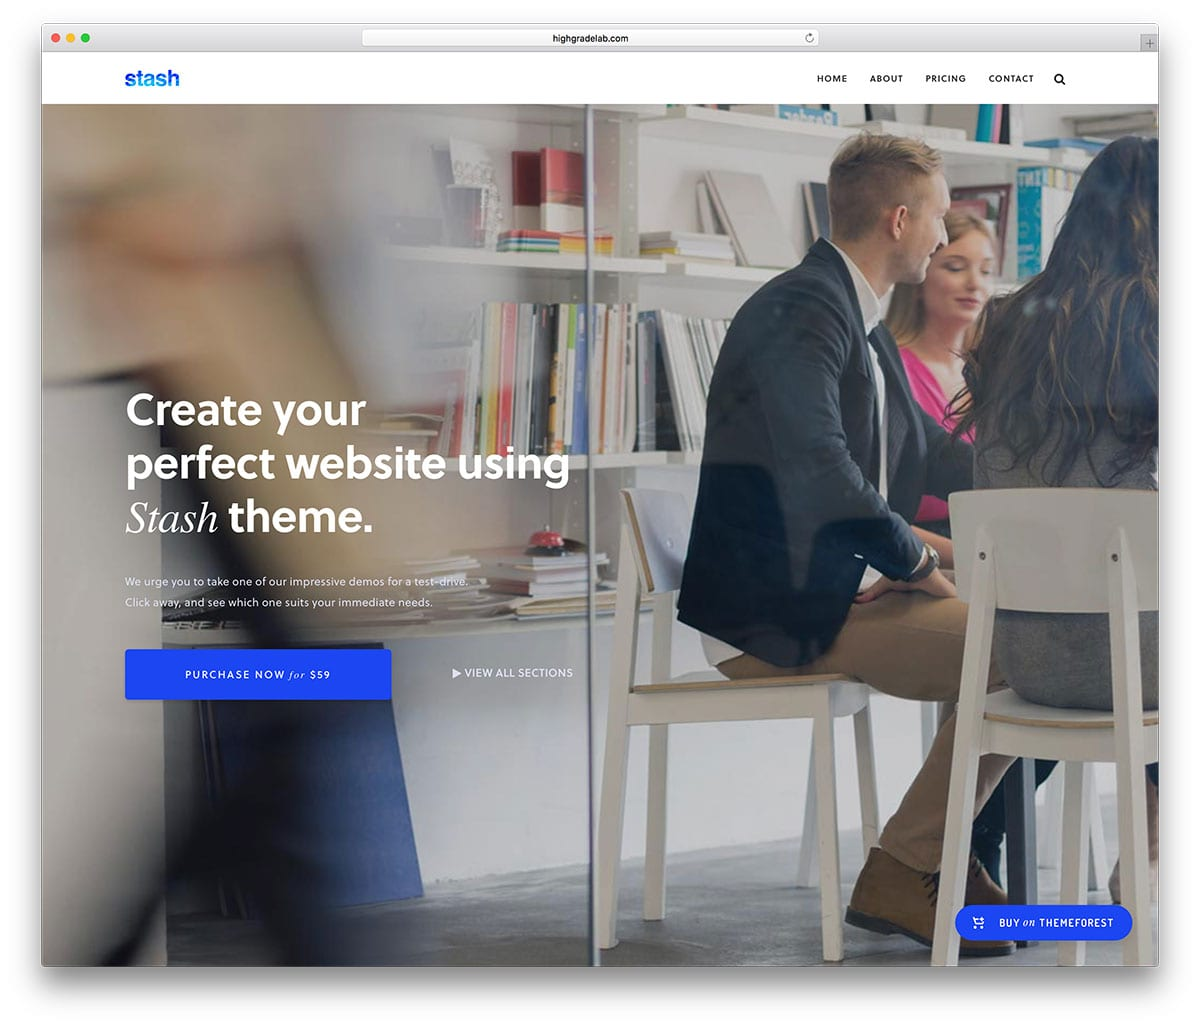 Stash Best Small Business WordPress Theme